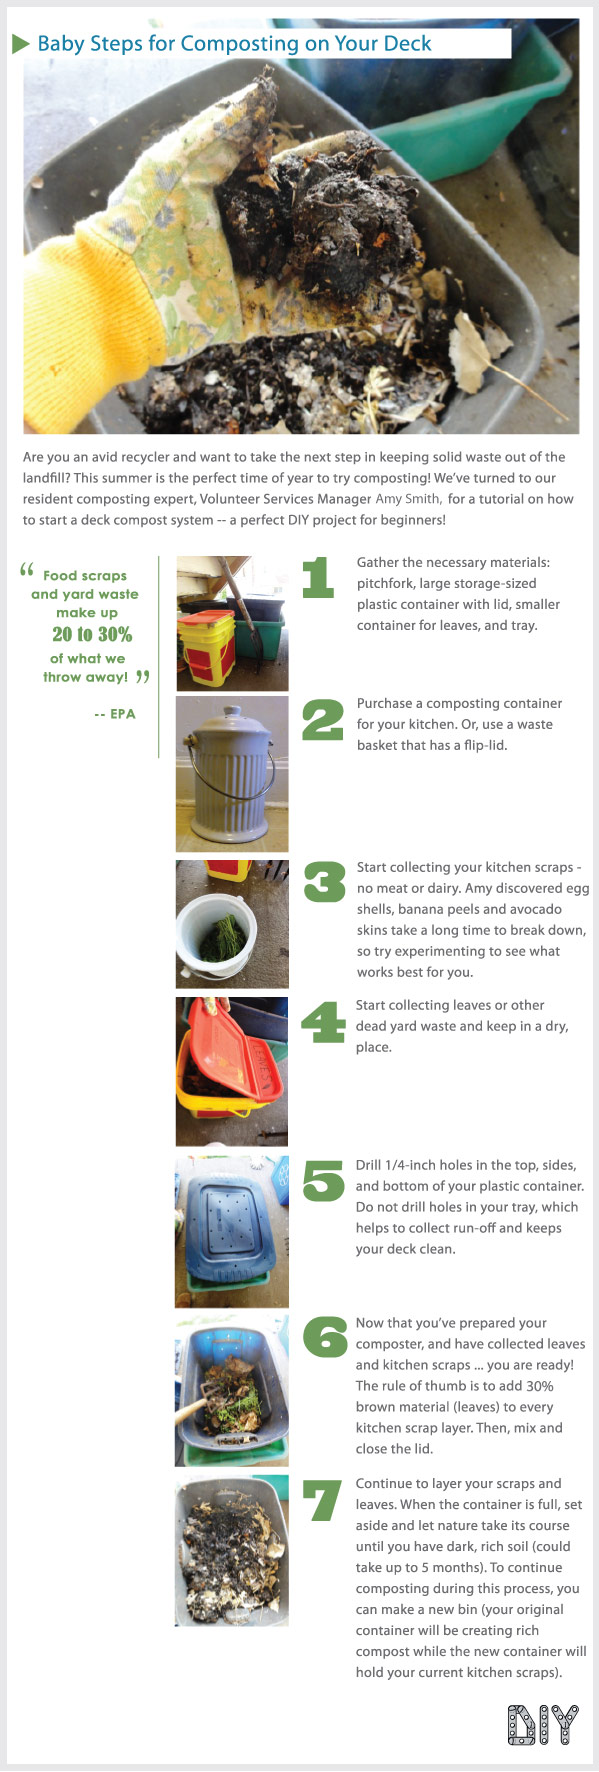 Baby Steps for Composting